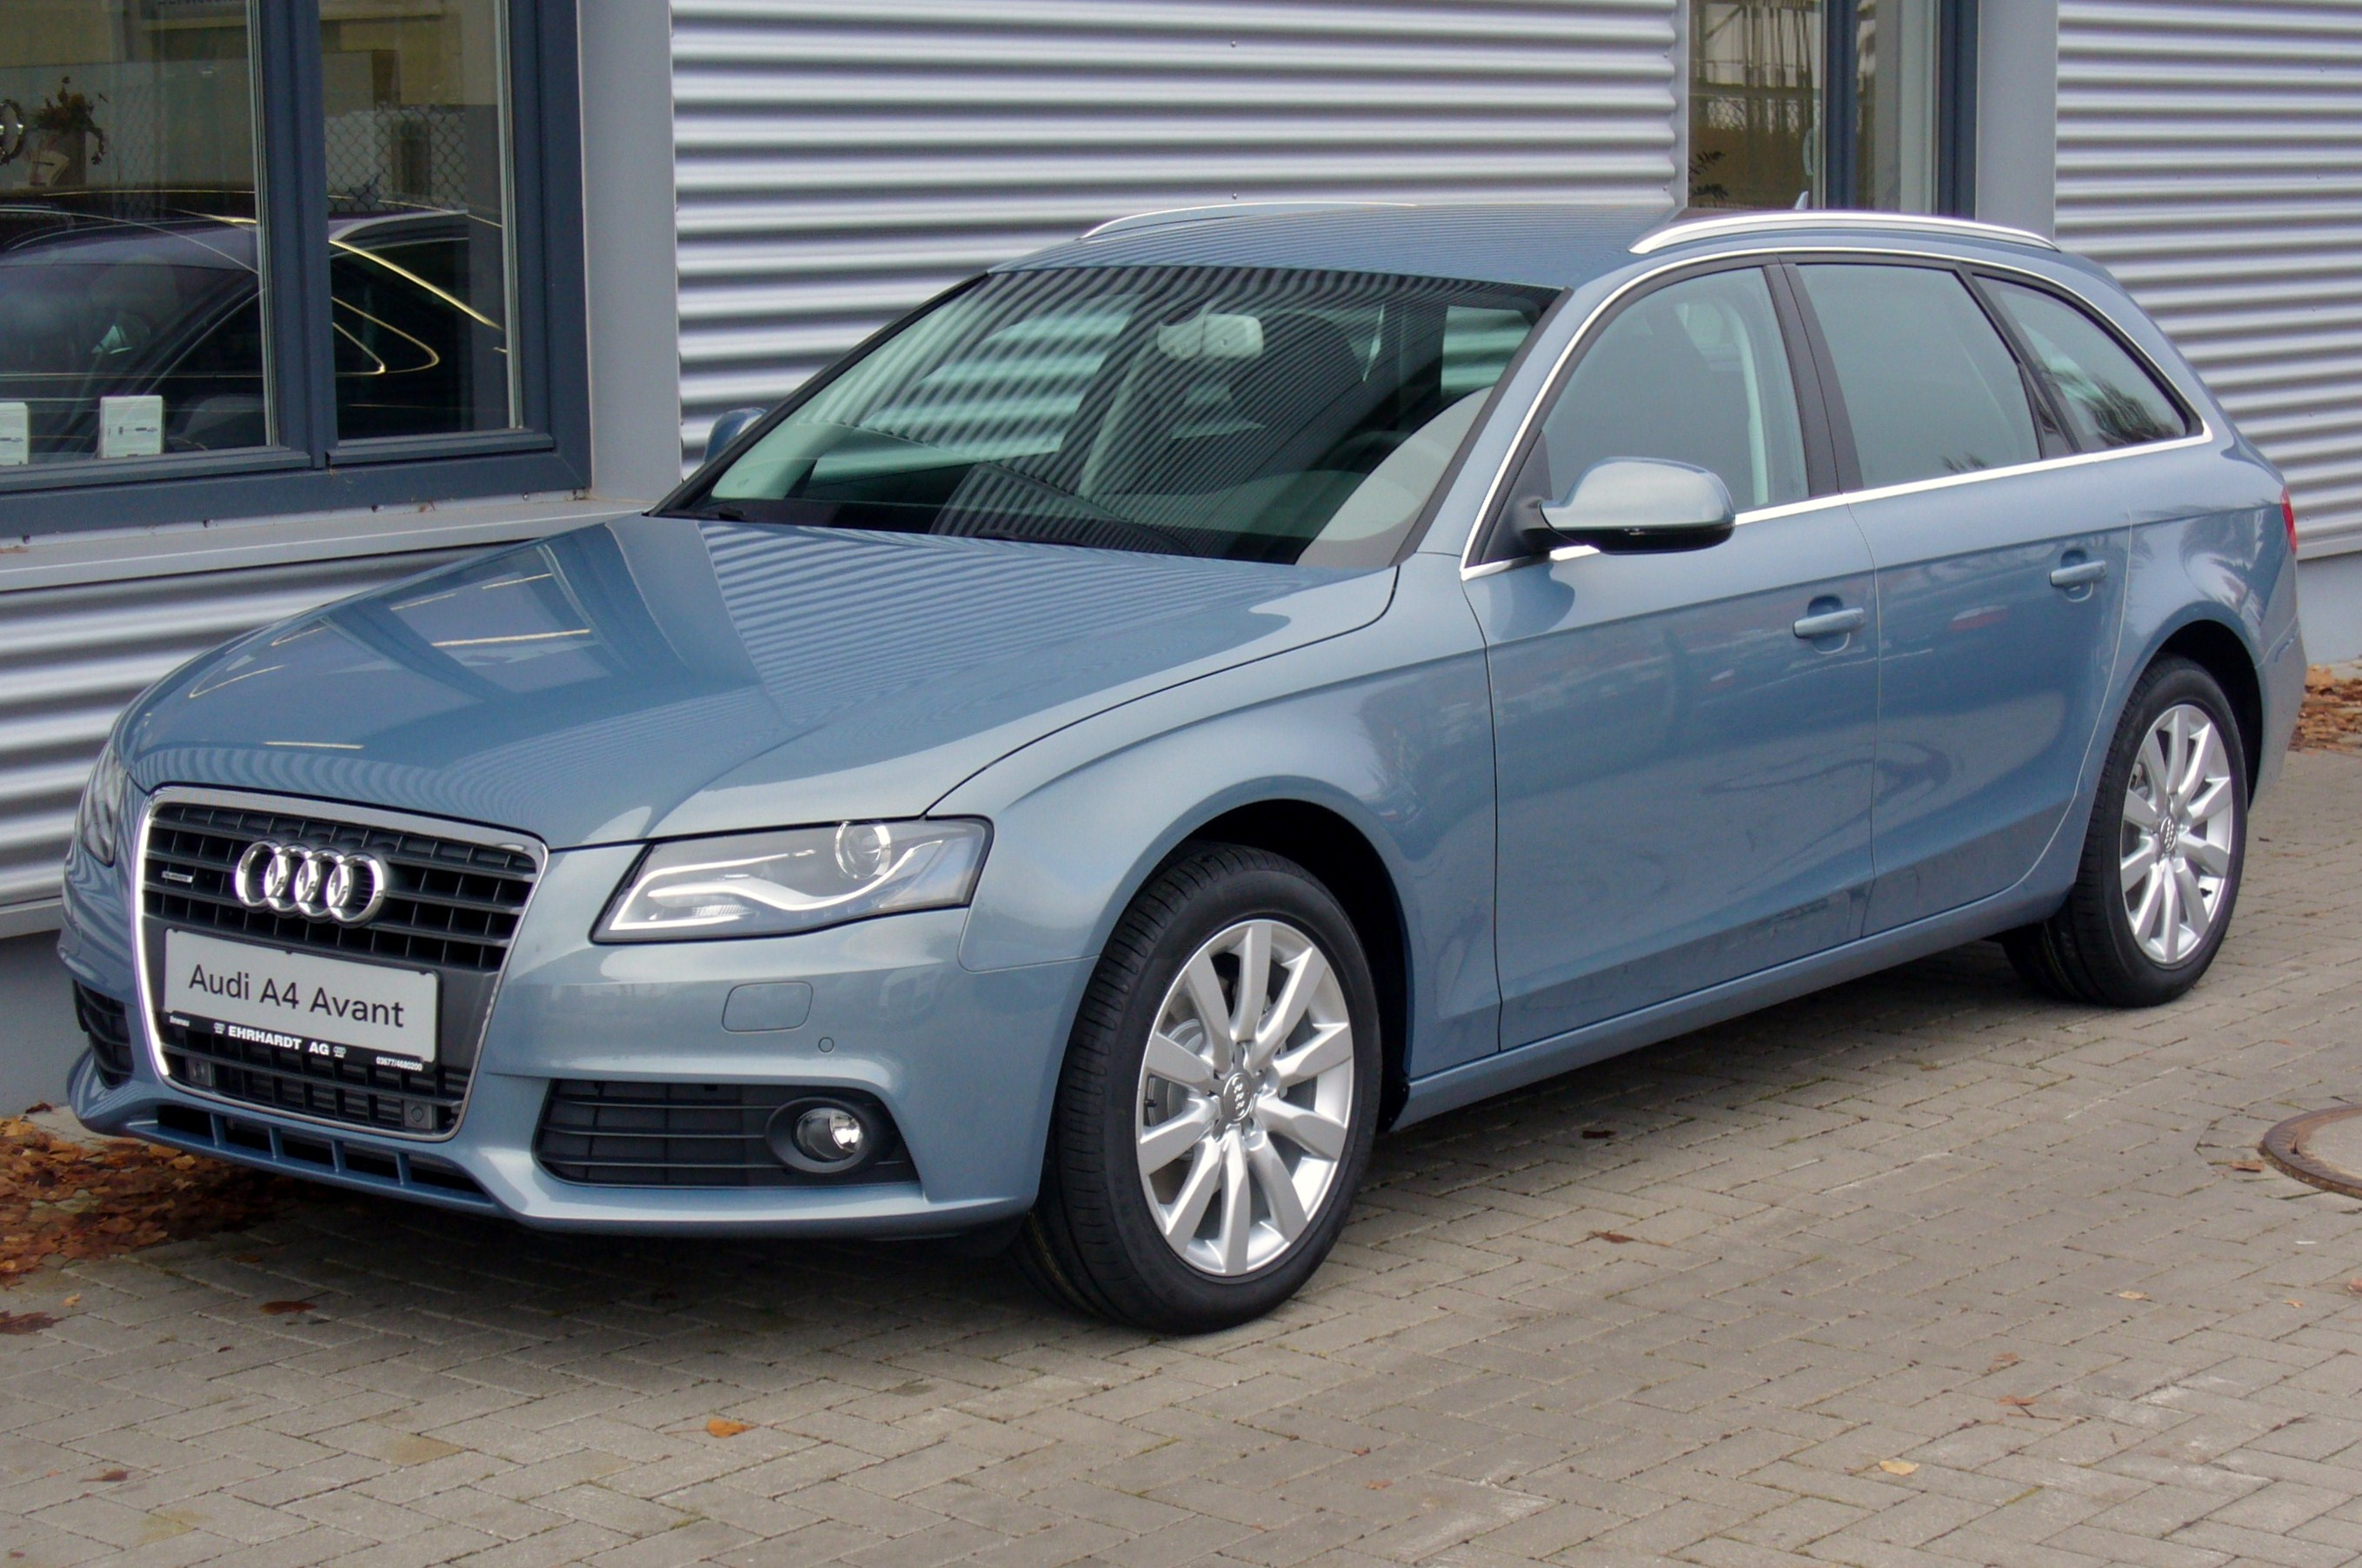 2005 audi a4 2.0 tdi quattro related infomation,specifications